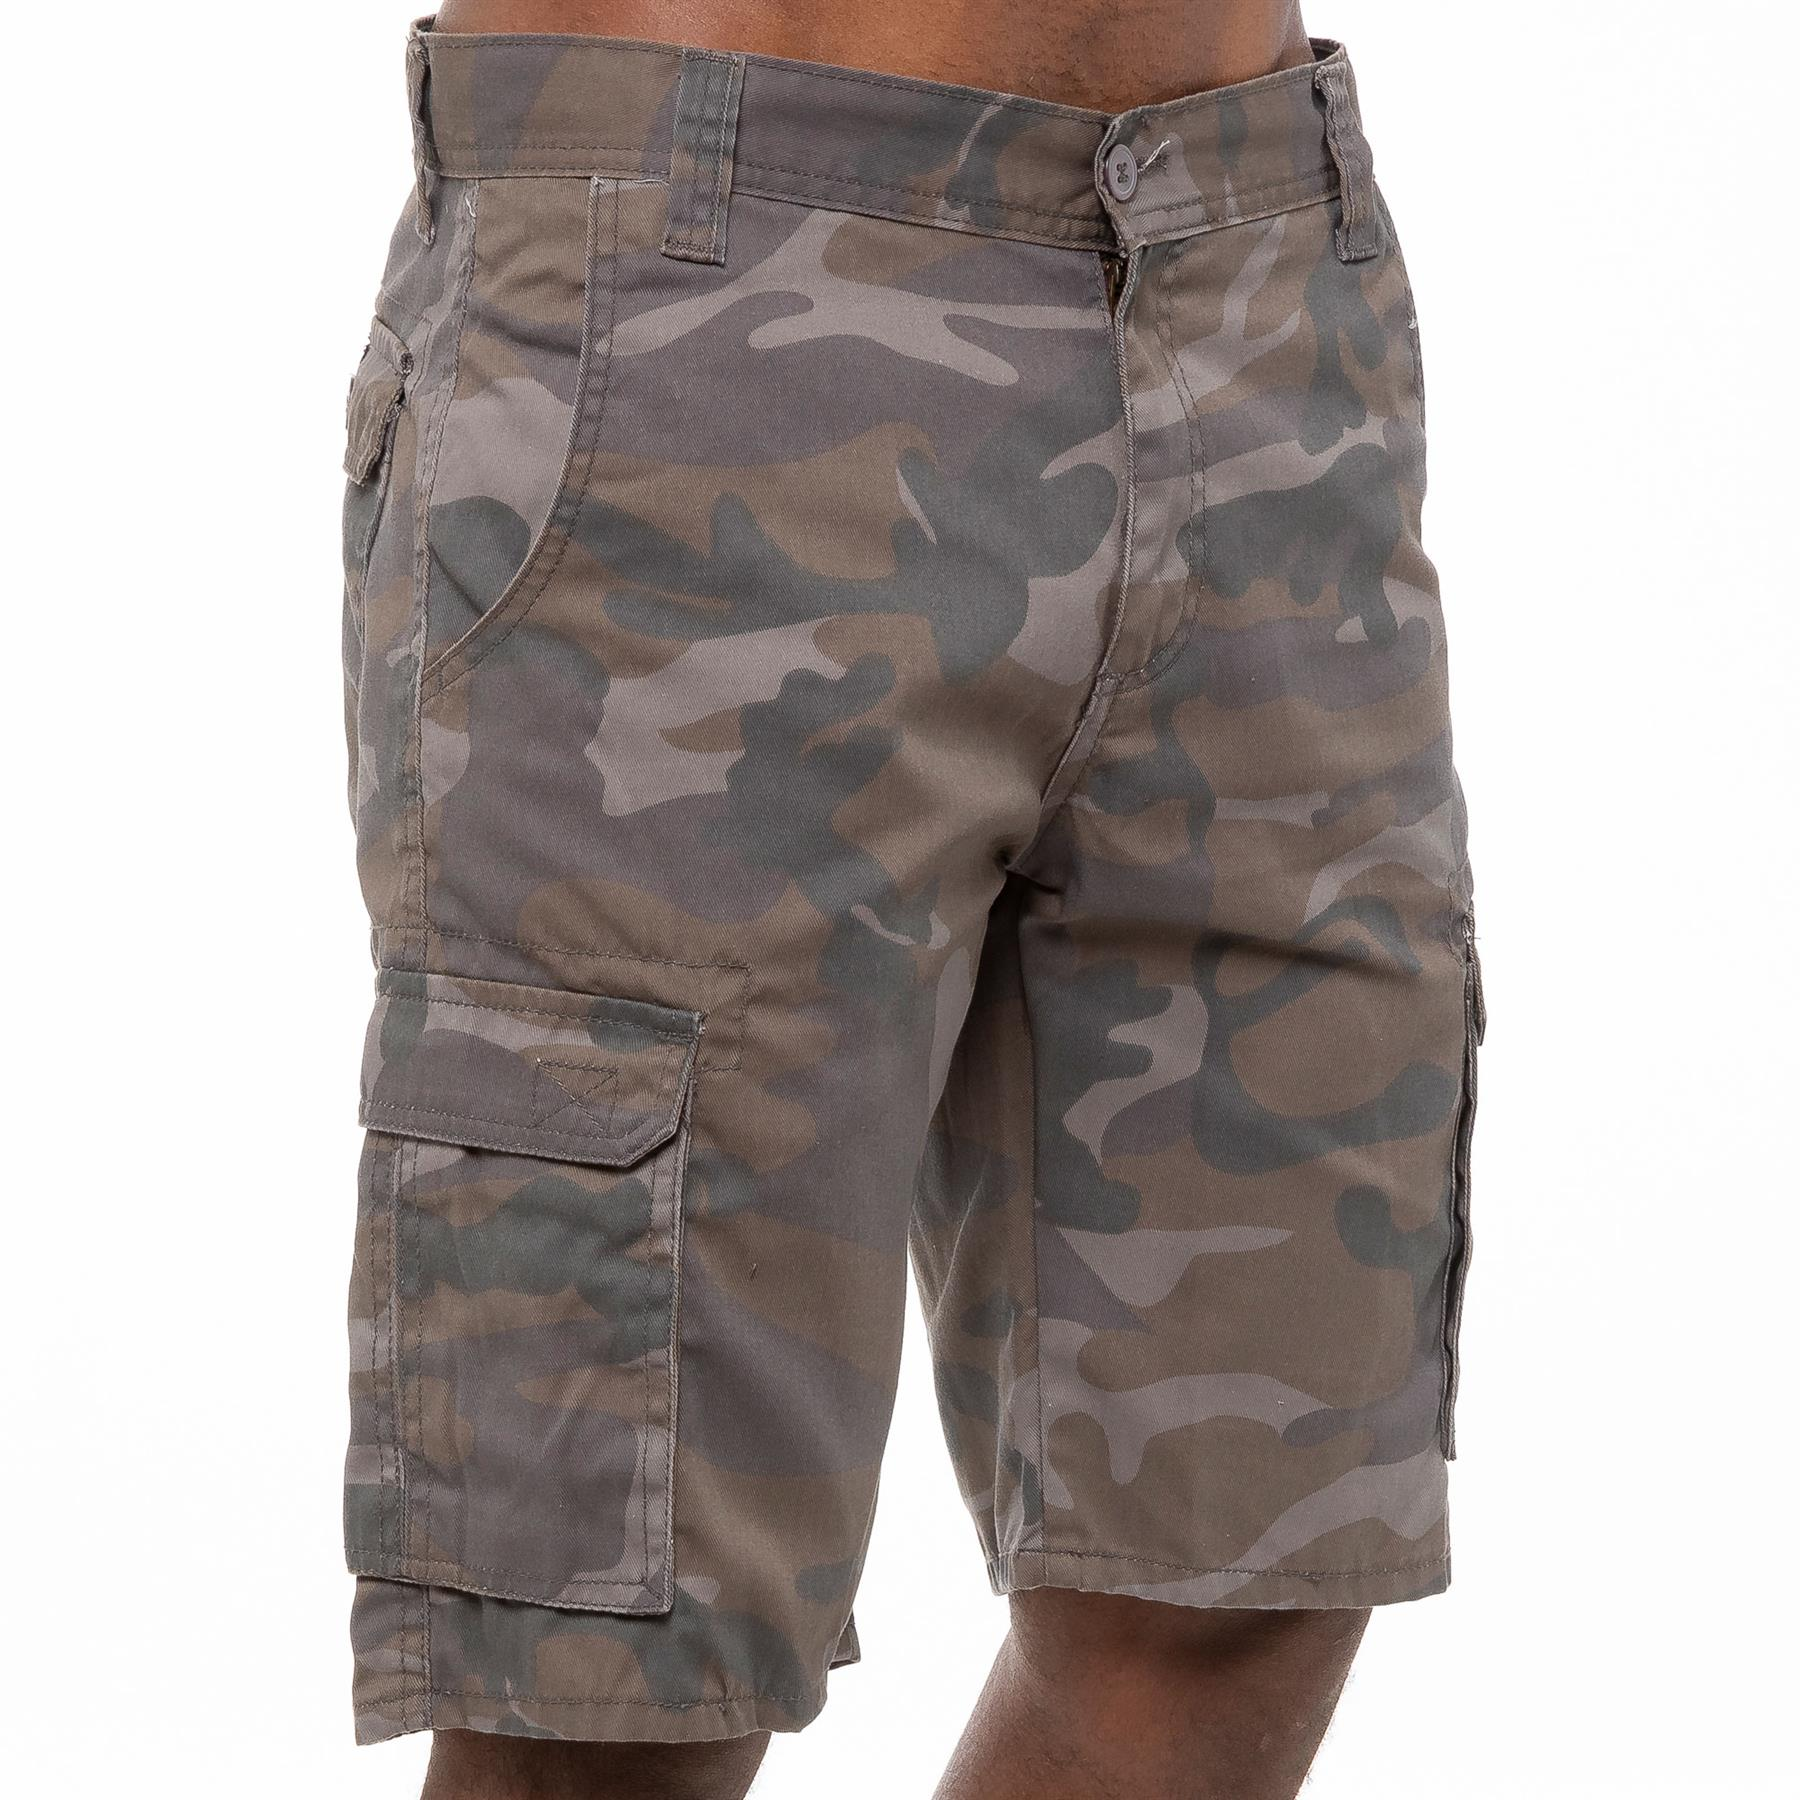 thumbnail 11 - Kruze Jeans Mens Army Combat Shorts Camouflage Cargo Casual Camo Work Half Pants